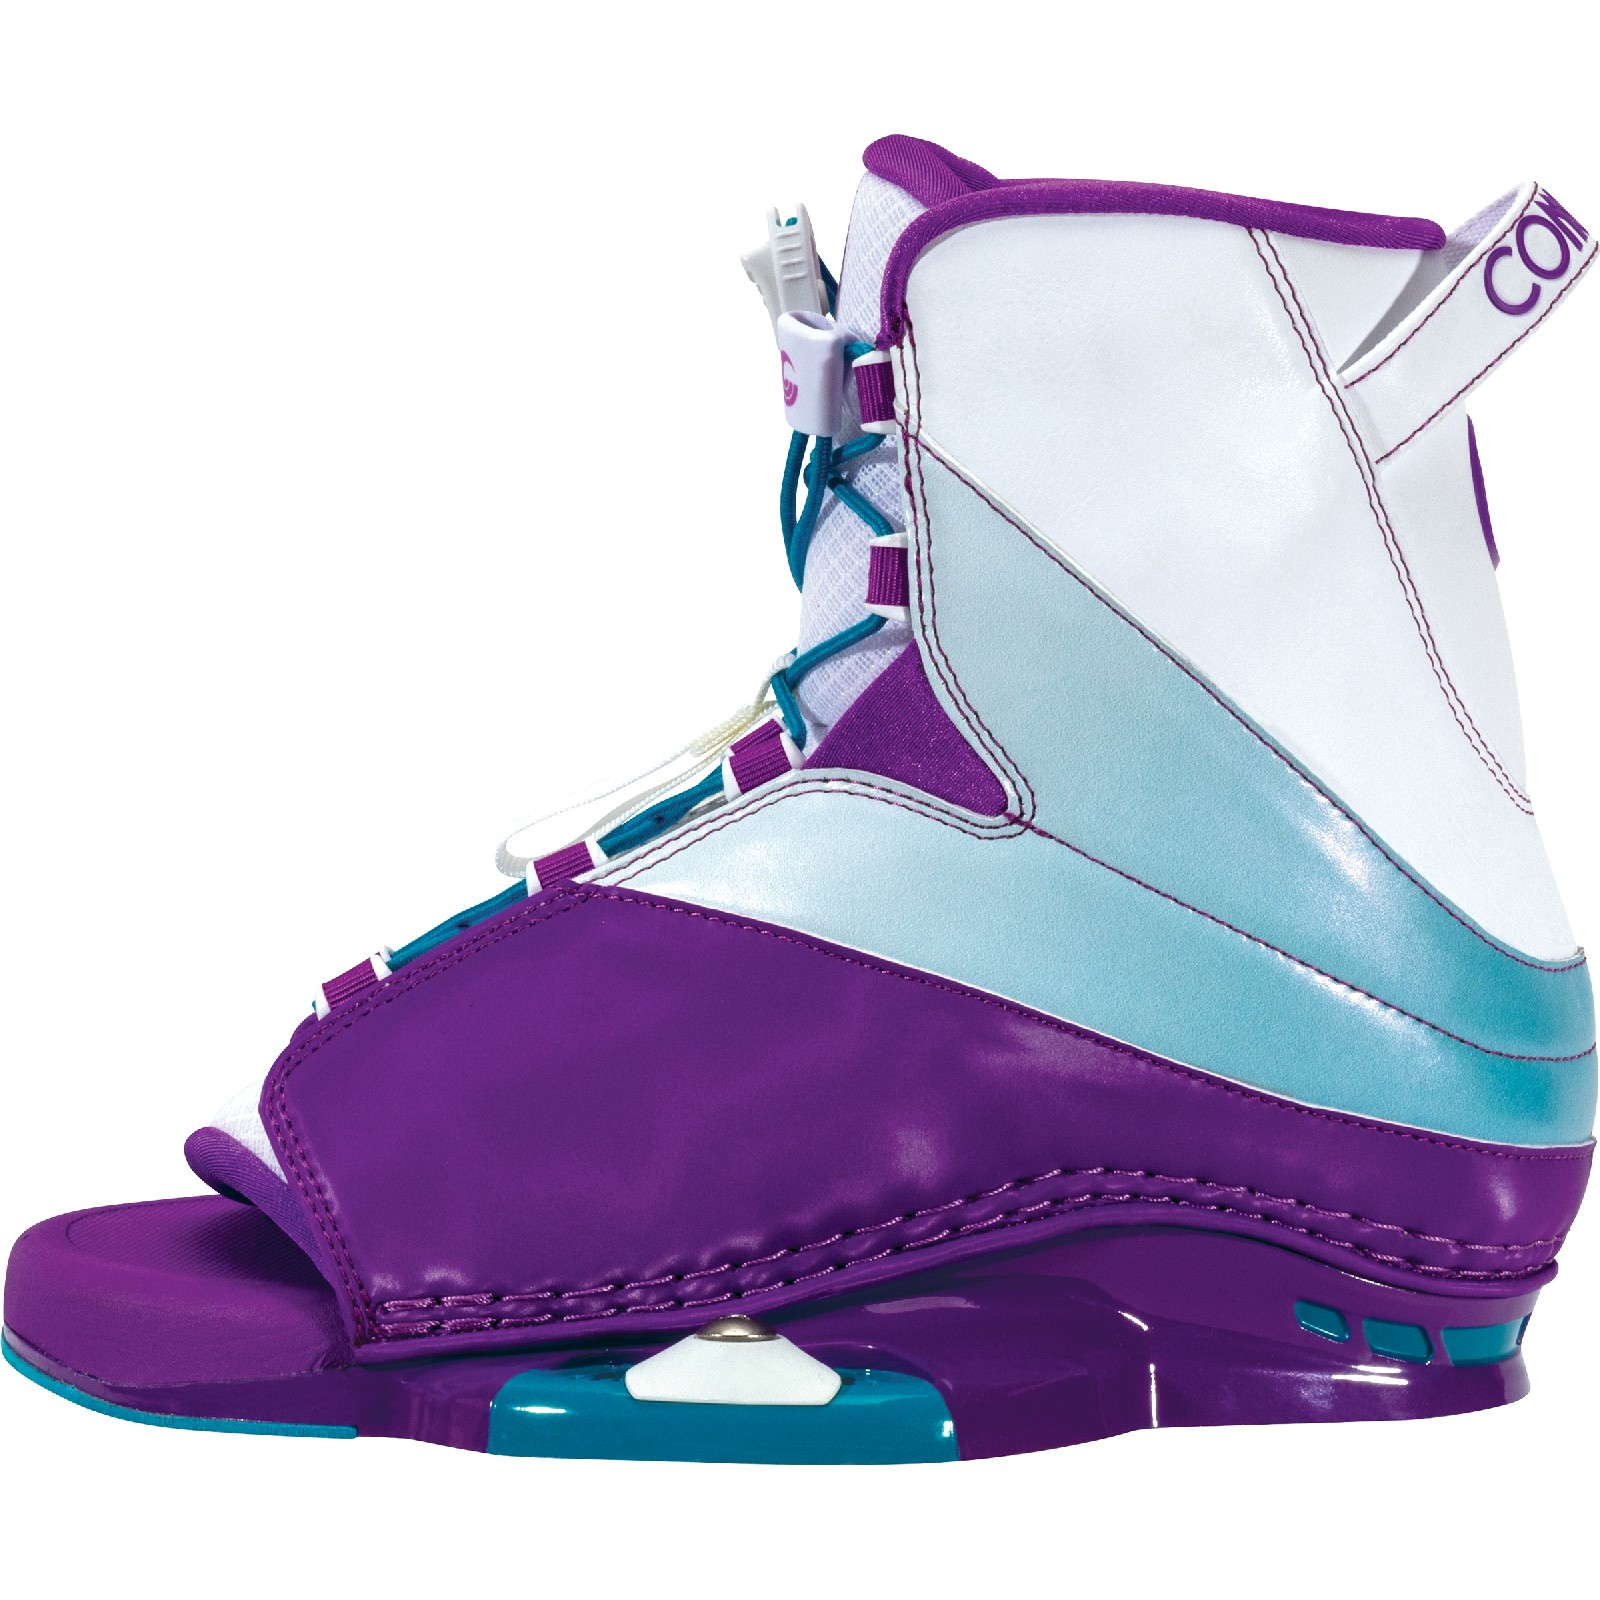 KARMA BOOT CONNELLY 2019